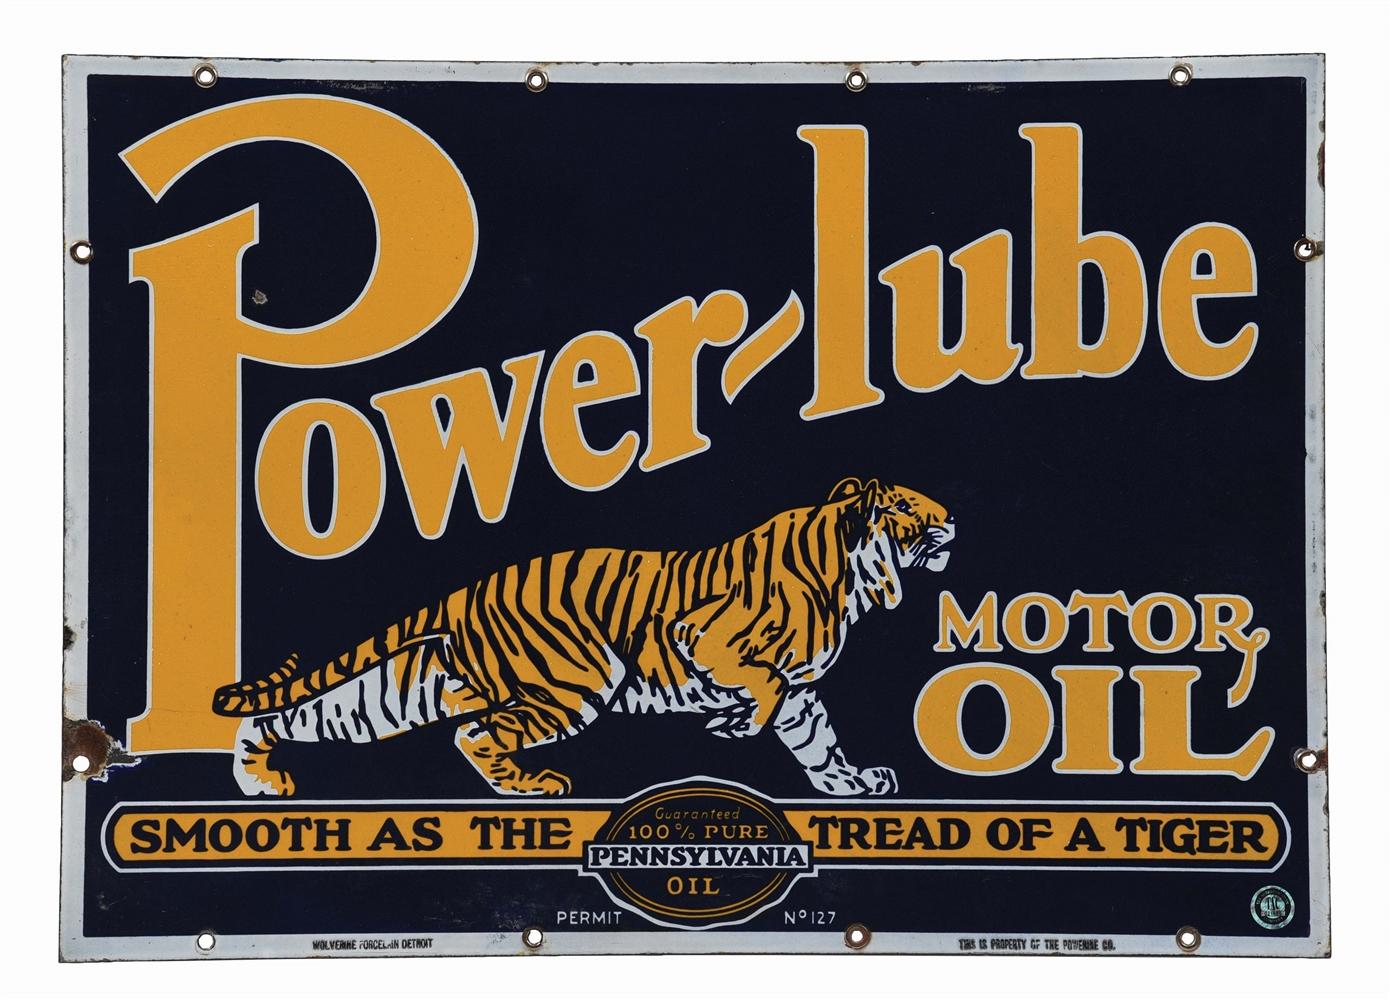 POWERLUBE MOTOR OIL PORCELAIN SIGN W/ TIGER GRAPHIC.